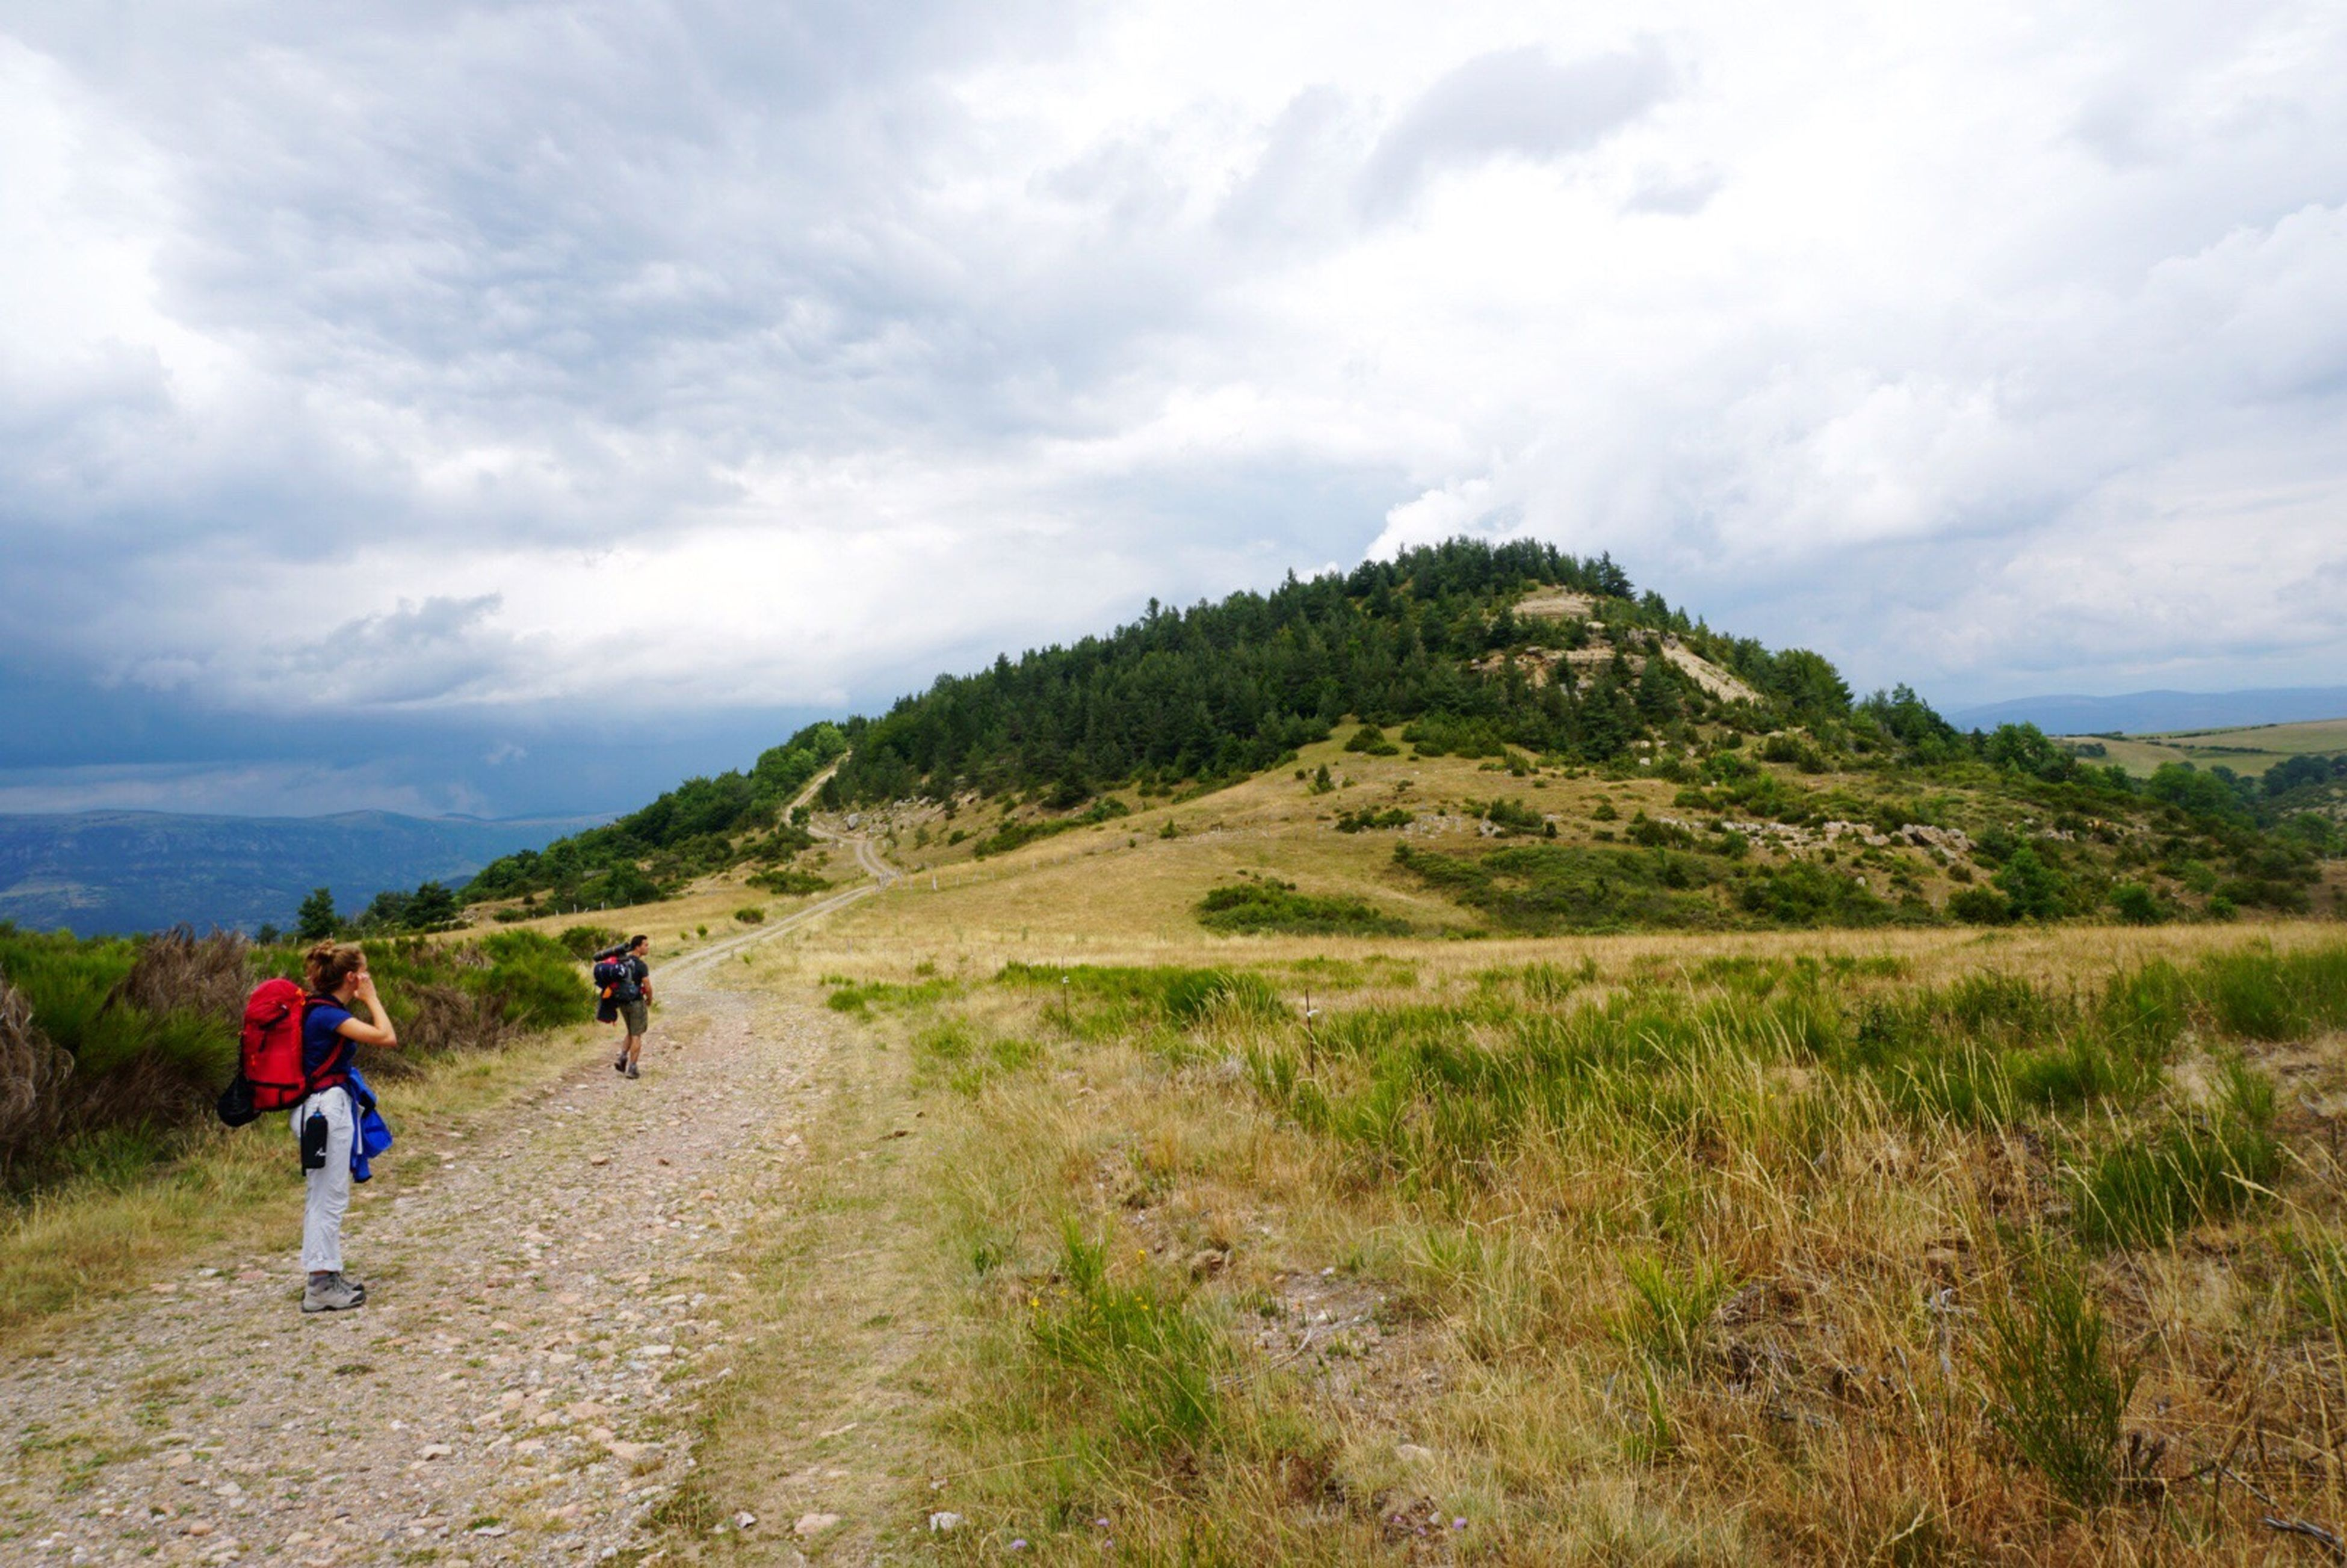 sky, nature, mountain, cloud - sky, walking, grass, landscape, scenics, backpack, hiking, rear view, beauty in nature, real people, tranquil scene, day, tranquility, adventure, leisure activity, men, outdoors, lifestyles, full length, friendship, people